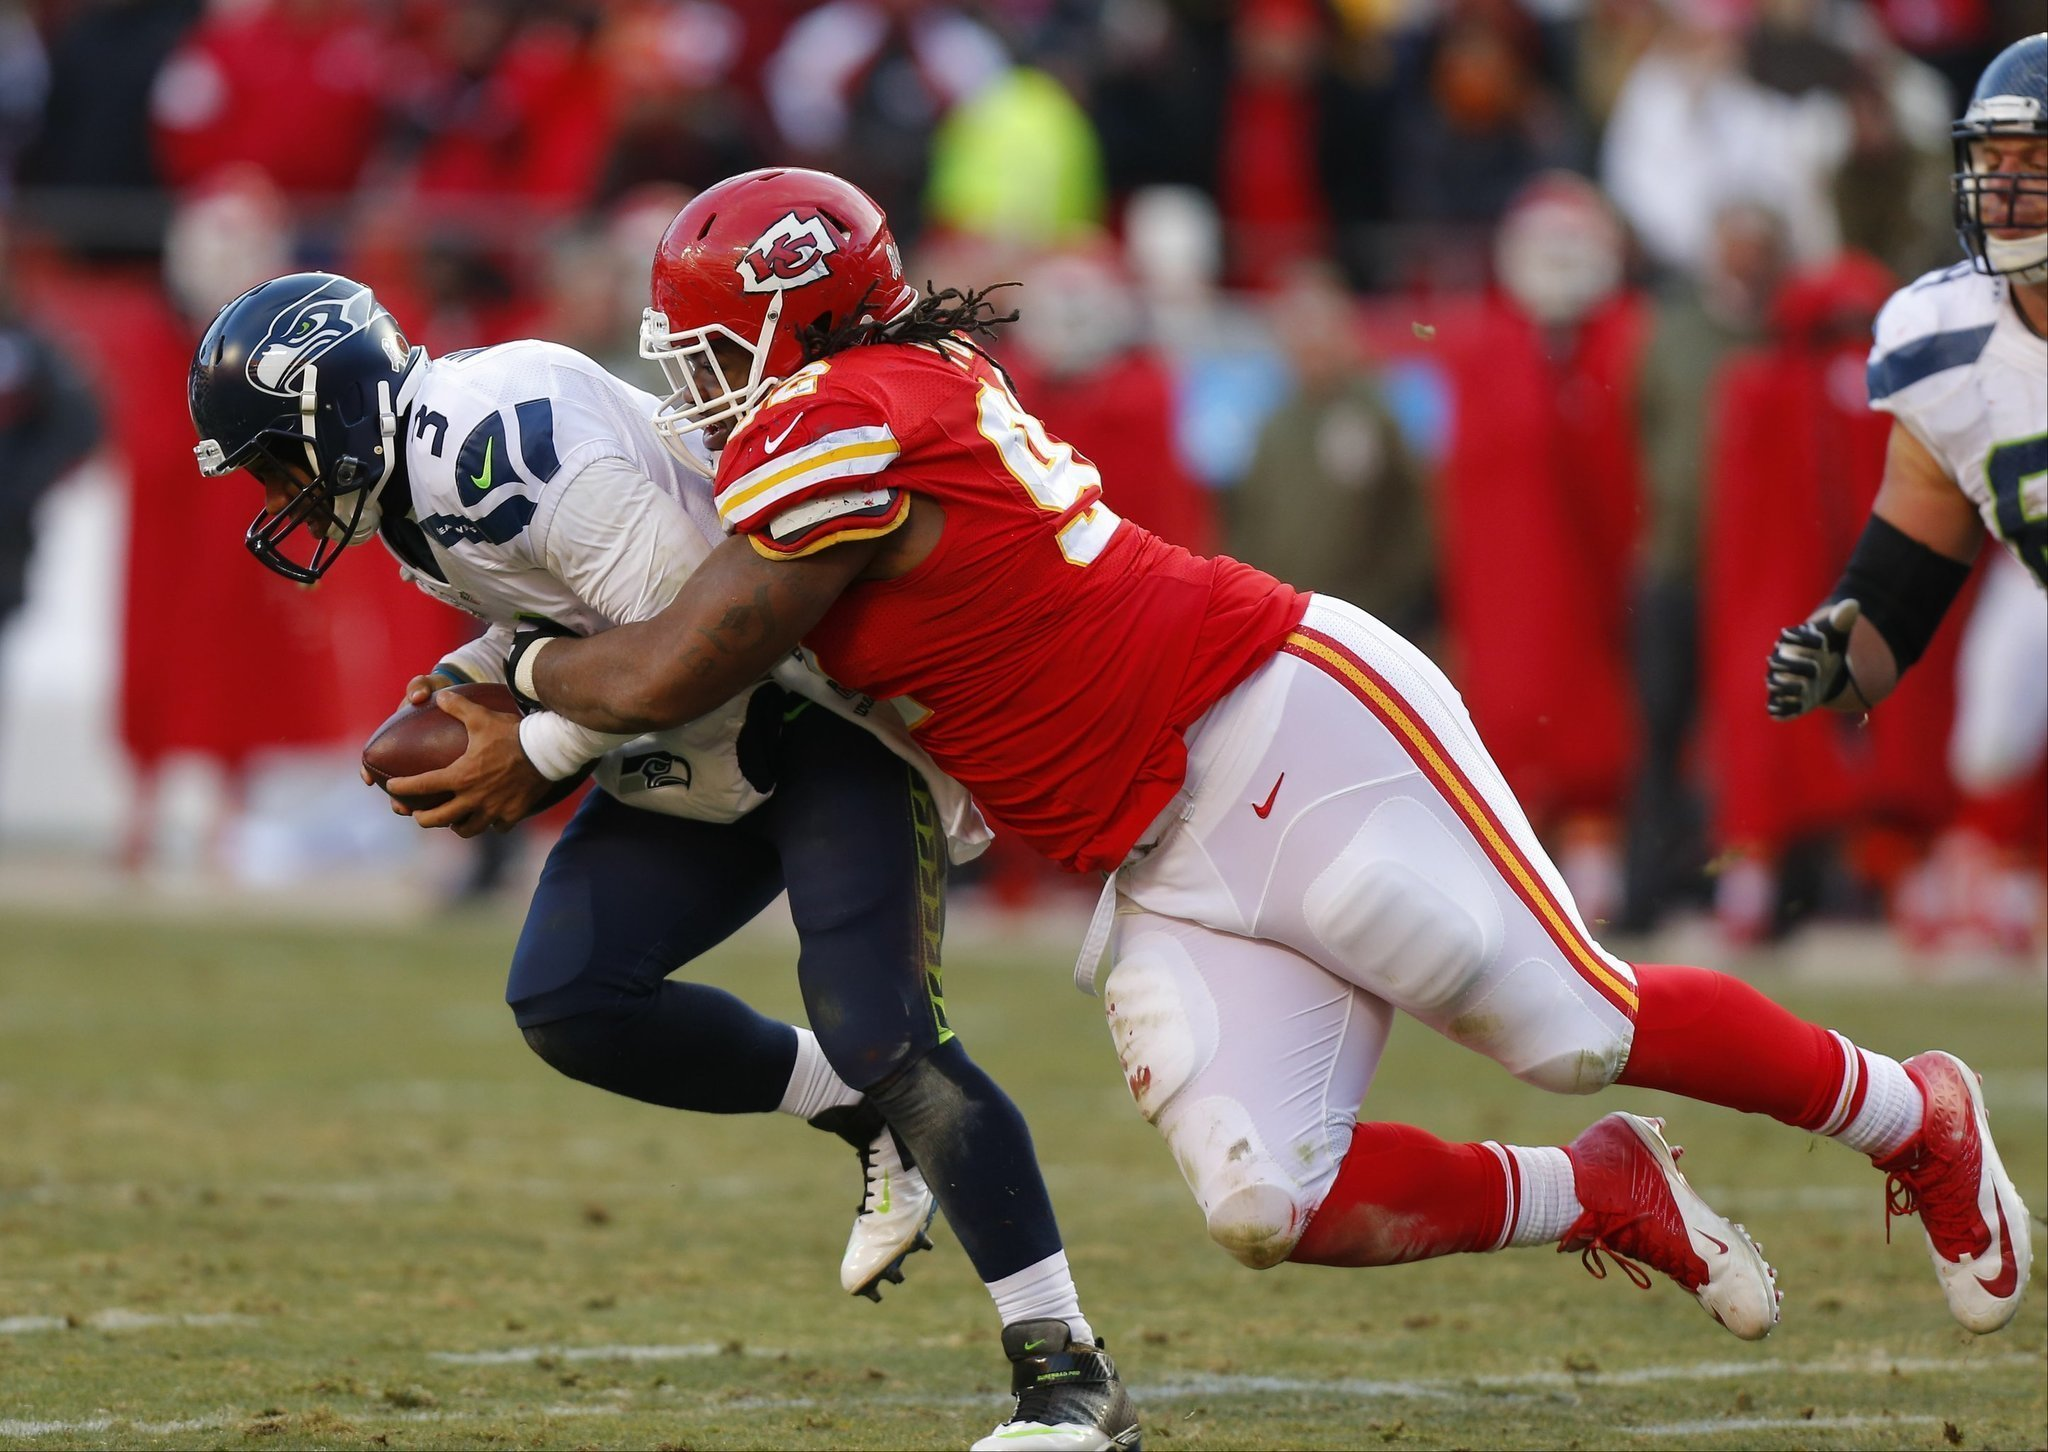 Chiefs Defender S Injury A Break For Chargers The San